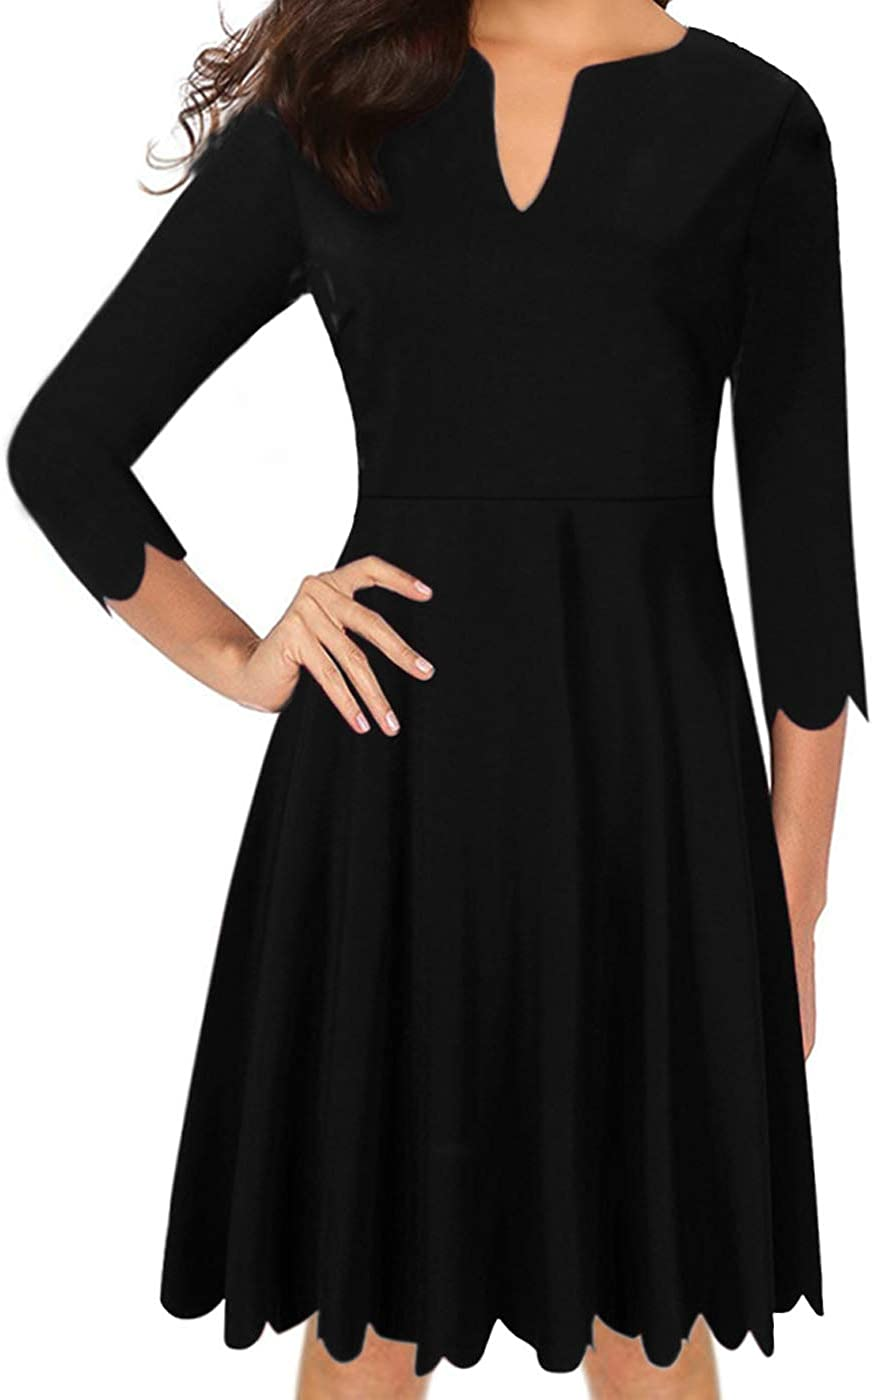 Clearlove Womens V-Neck A-Line Pleated Party Casual Dress